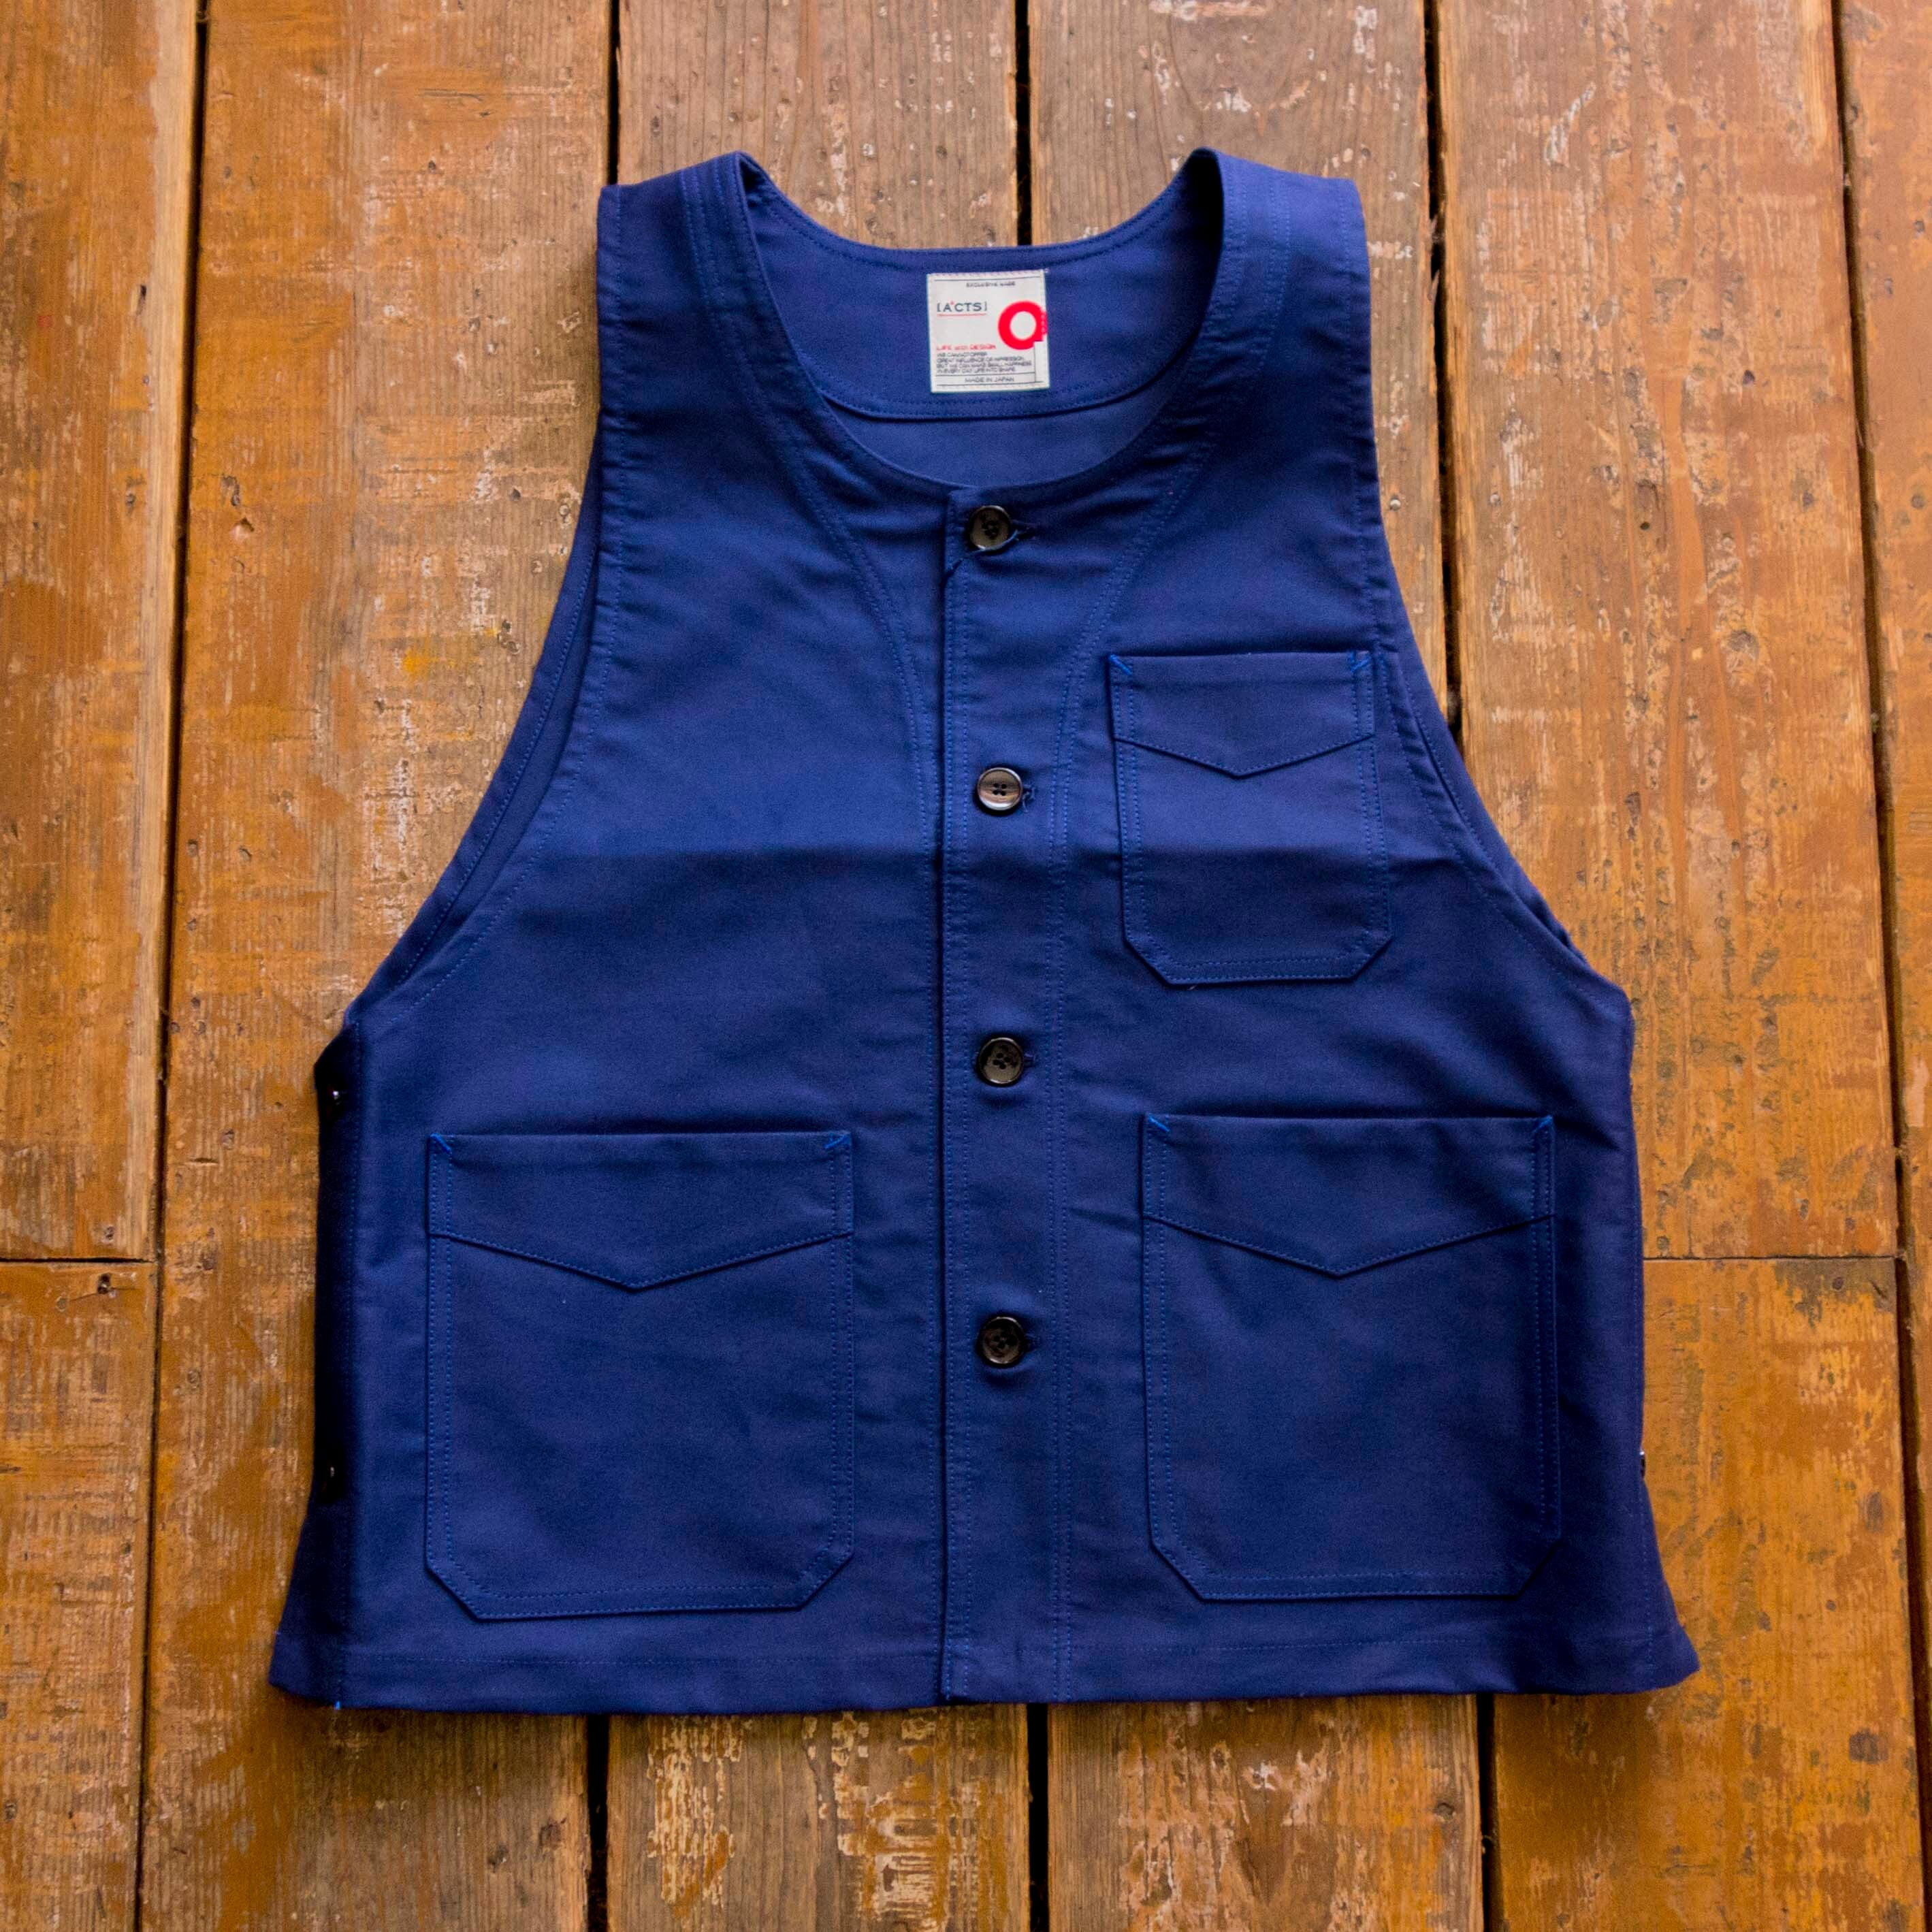 [ACTS] VEST A52002 (NAVY)